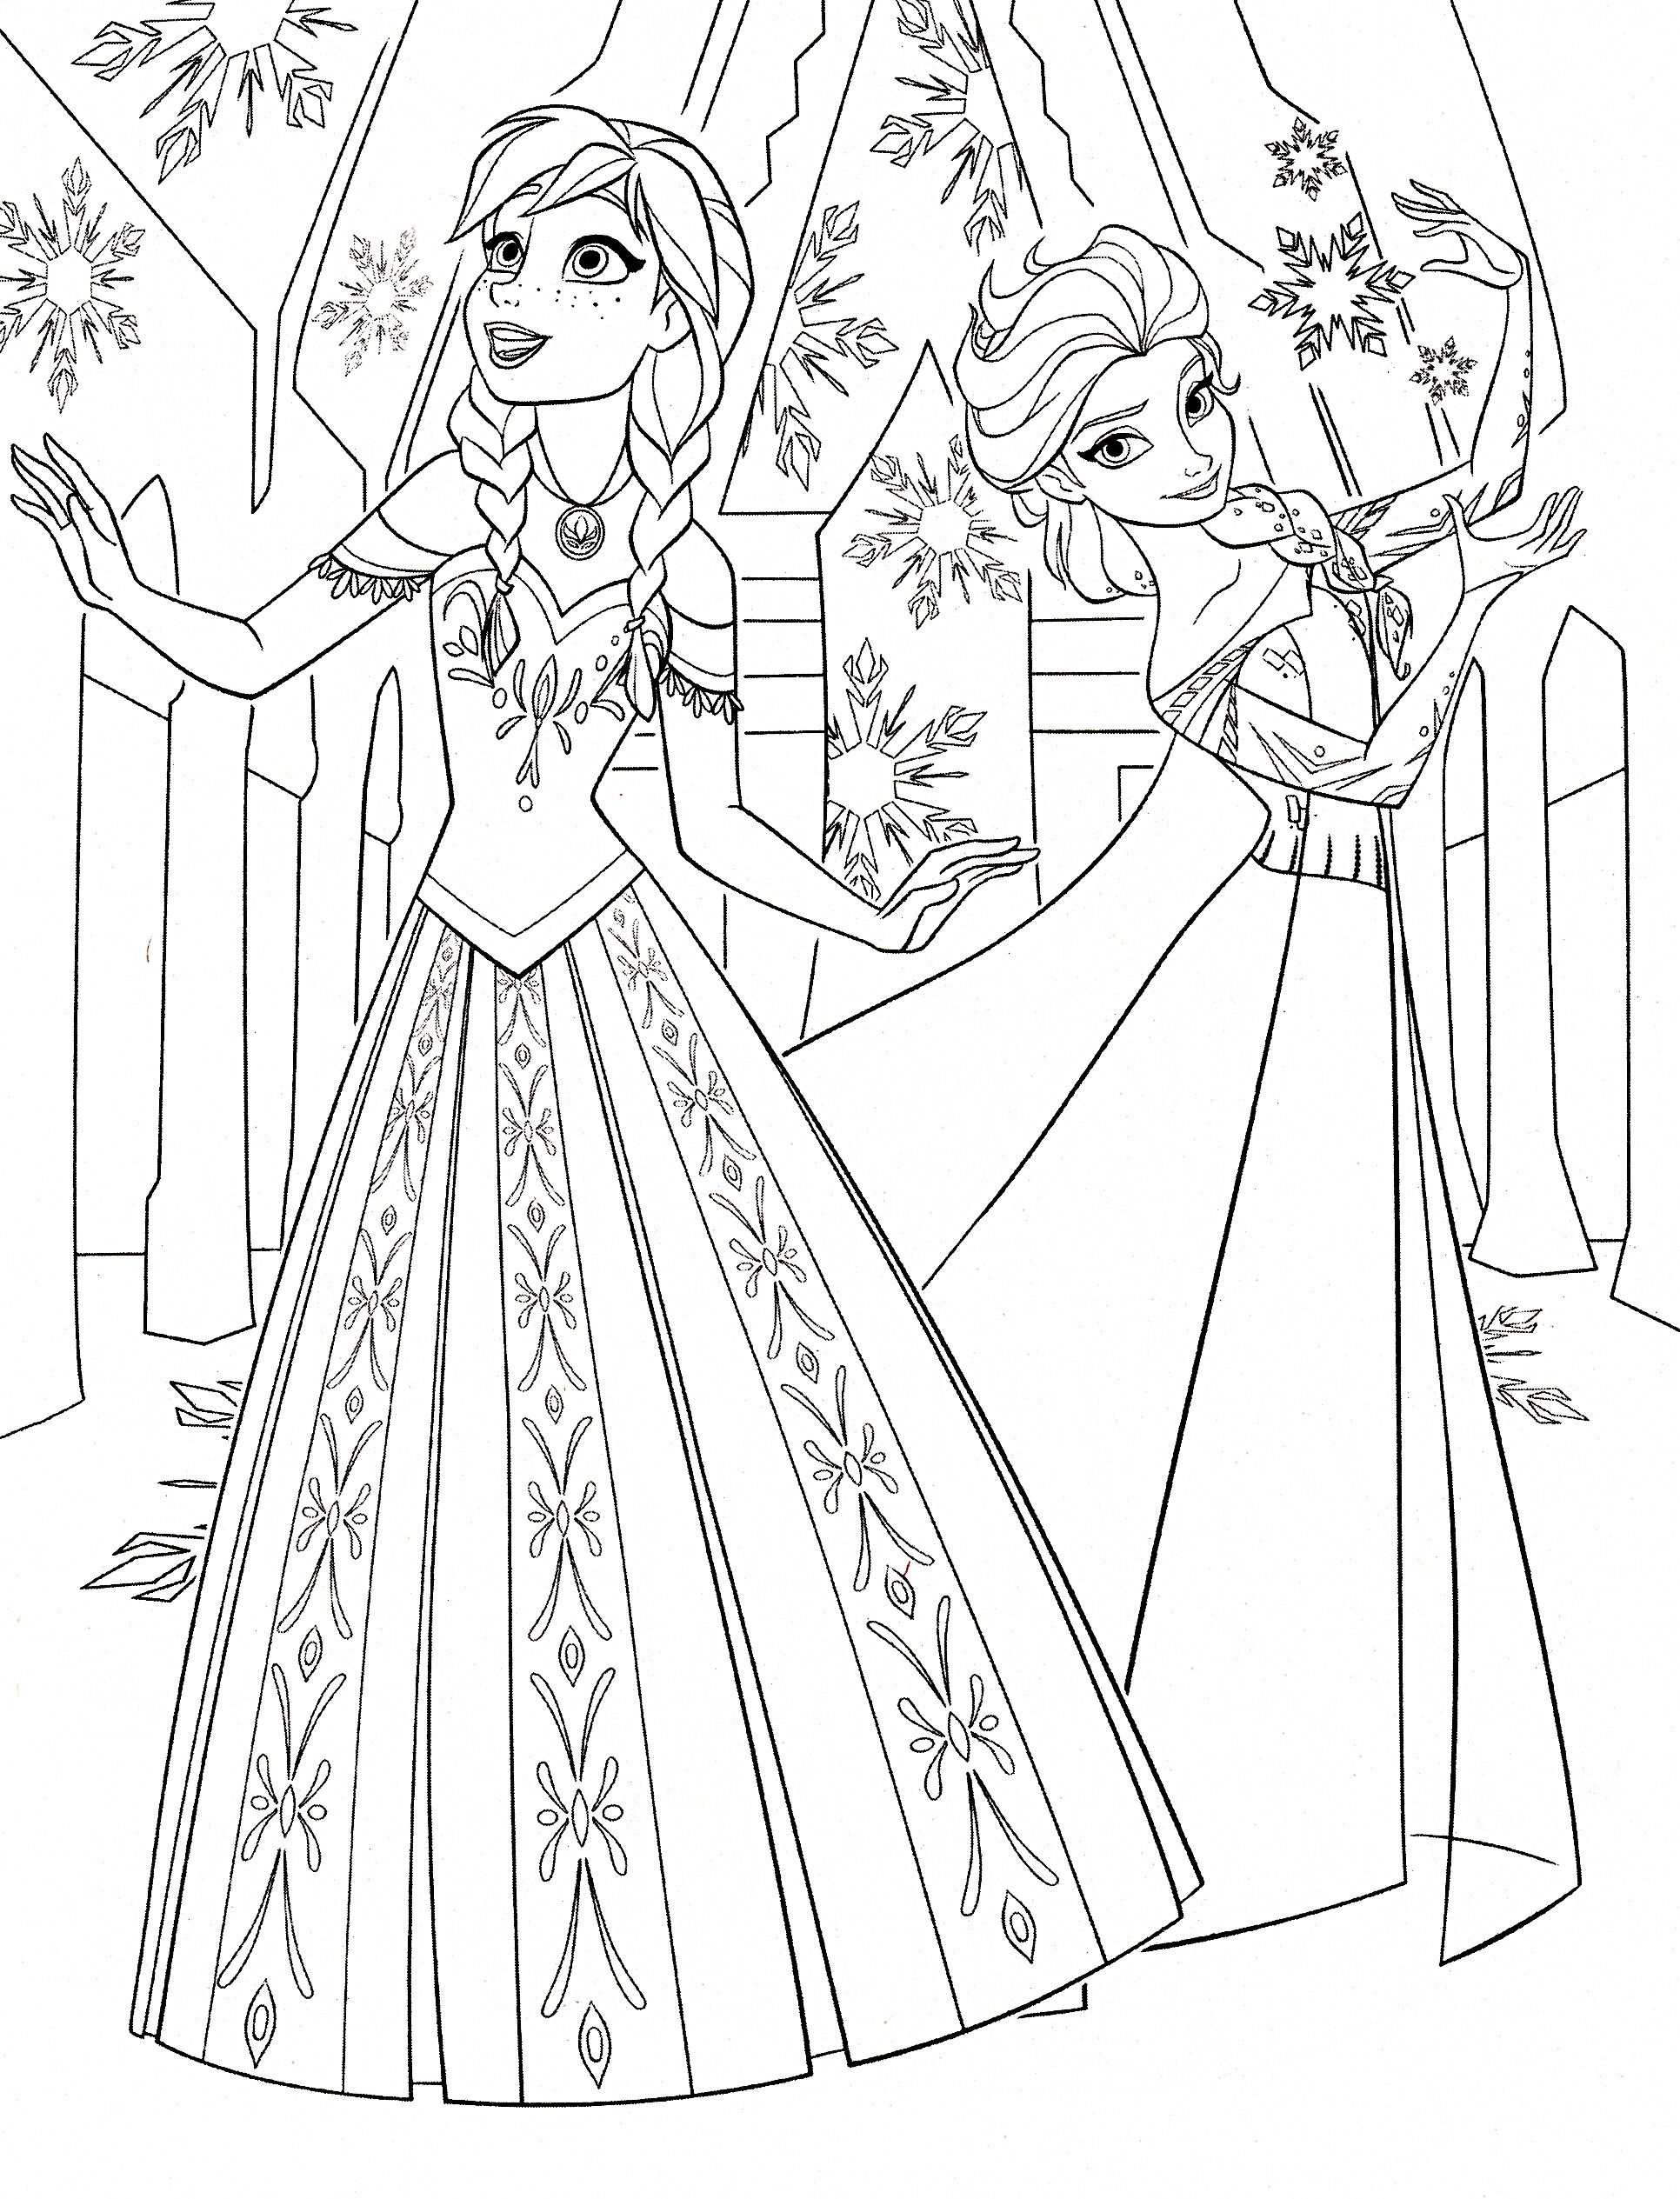 Coloring book disney princess - Color Pages Of Anna Elsa Frozen Walt Disney Princess Characters